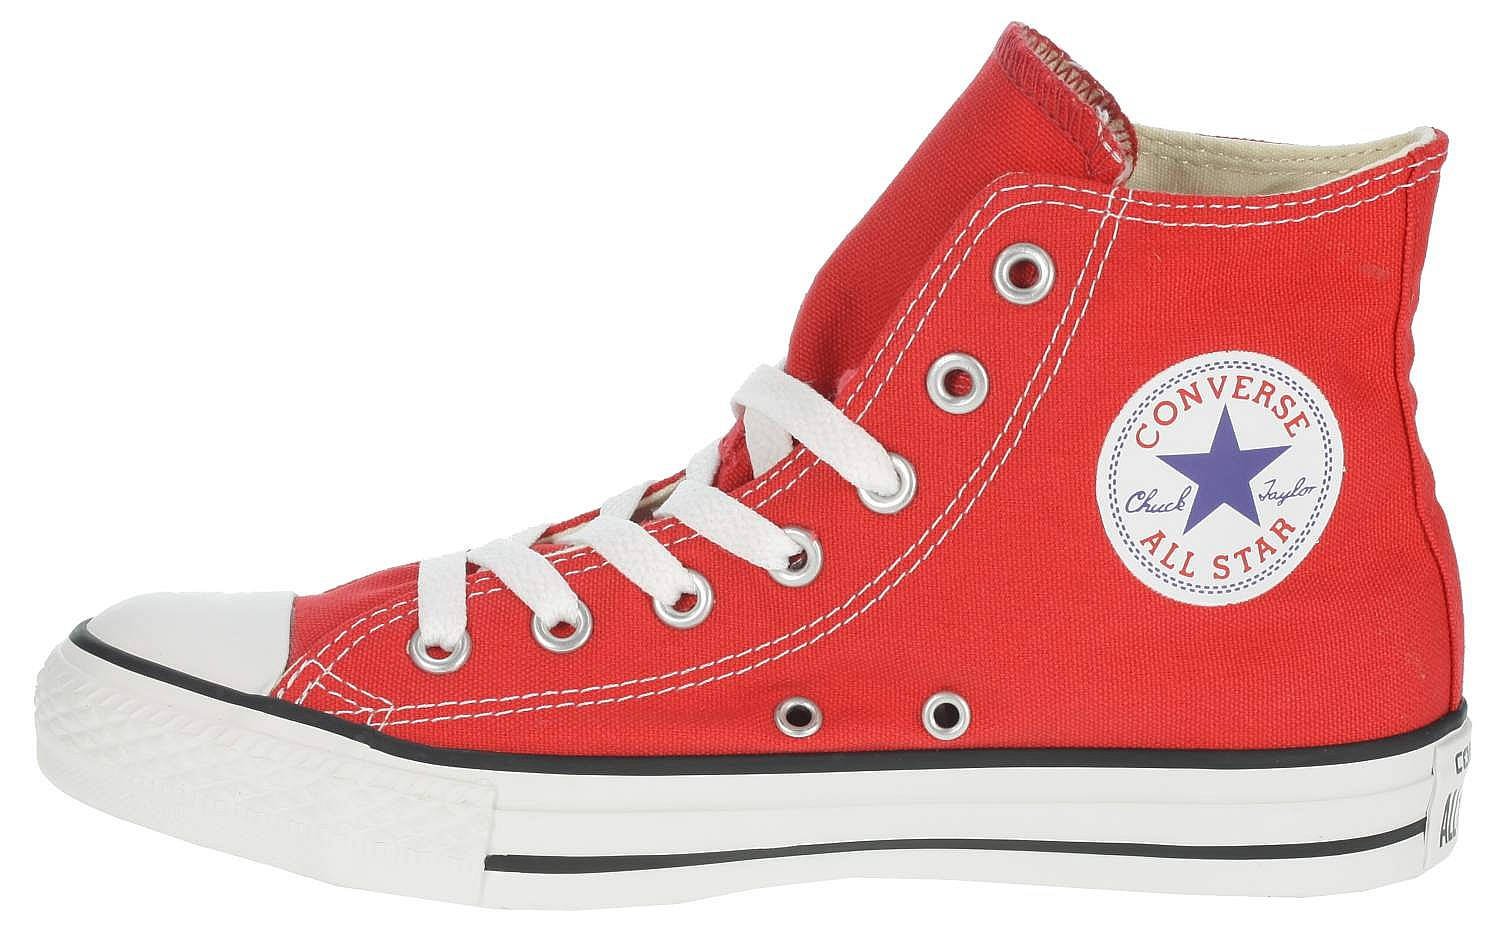 shoes Converse Chuck Taylor All Star Hi - M9621C/Red